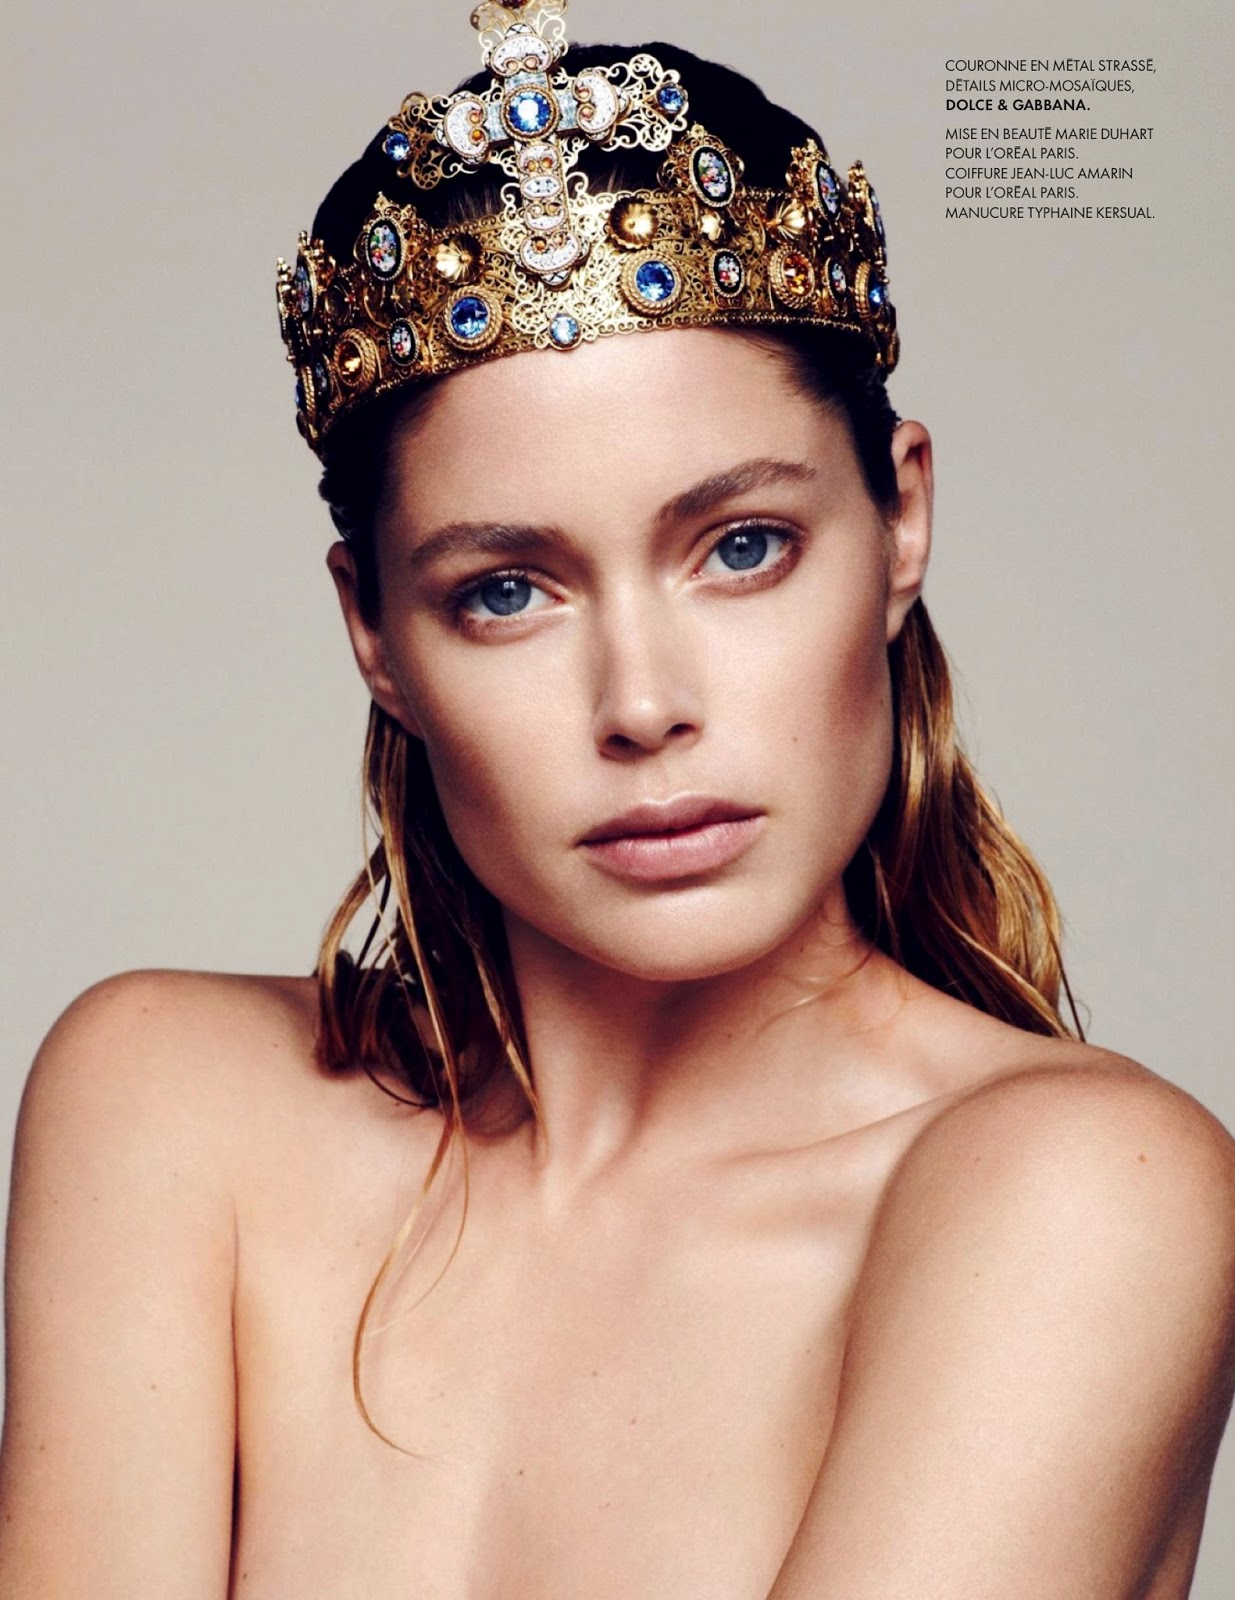 fashion_scans_remastered-doutzen_kroes-elle_france_1-issue_3531-scanned_by_vampirehorde-hq-29.jpg